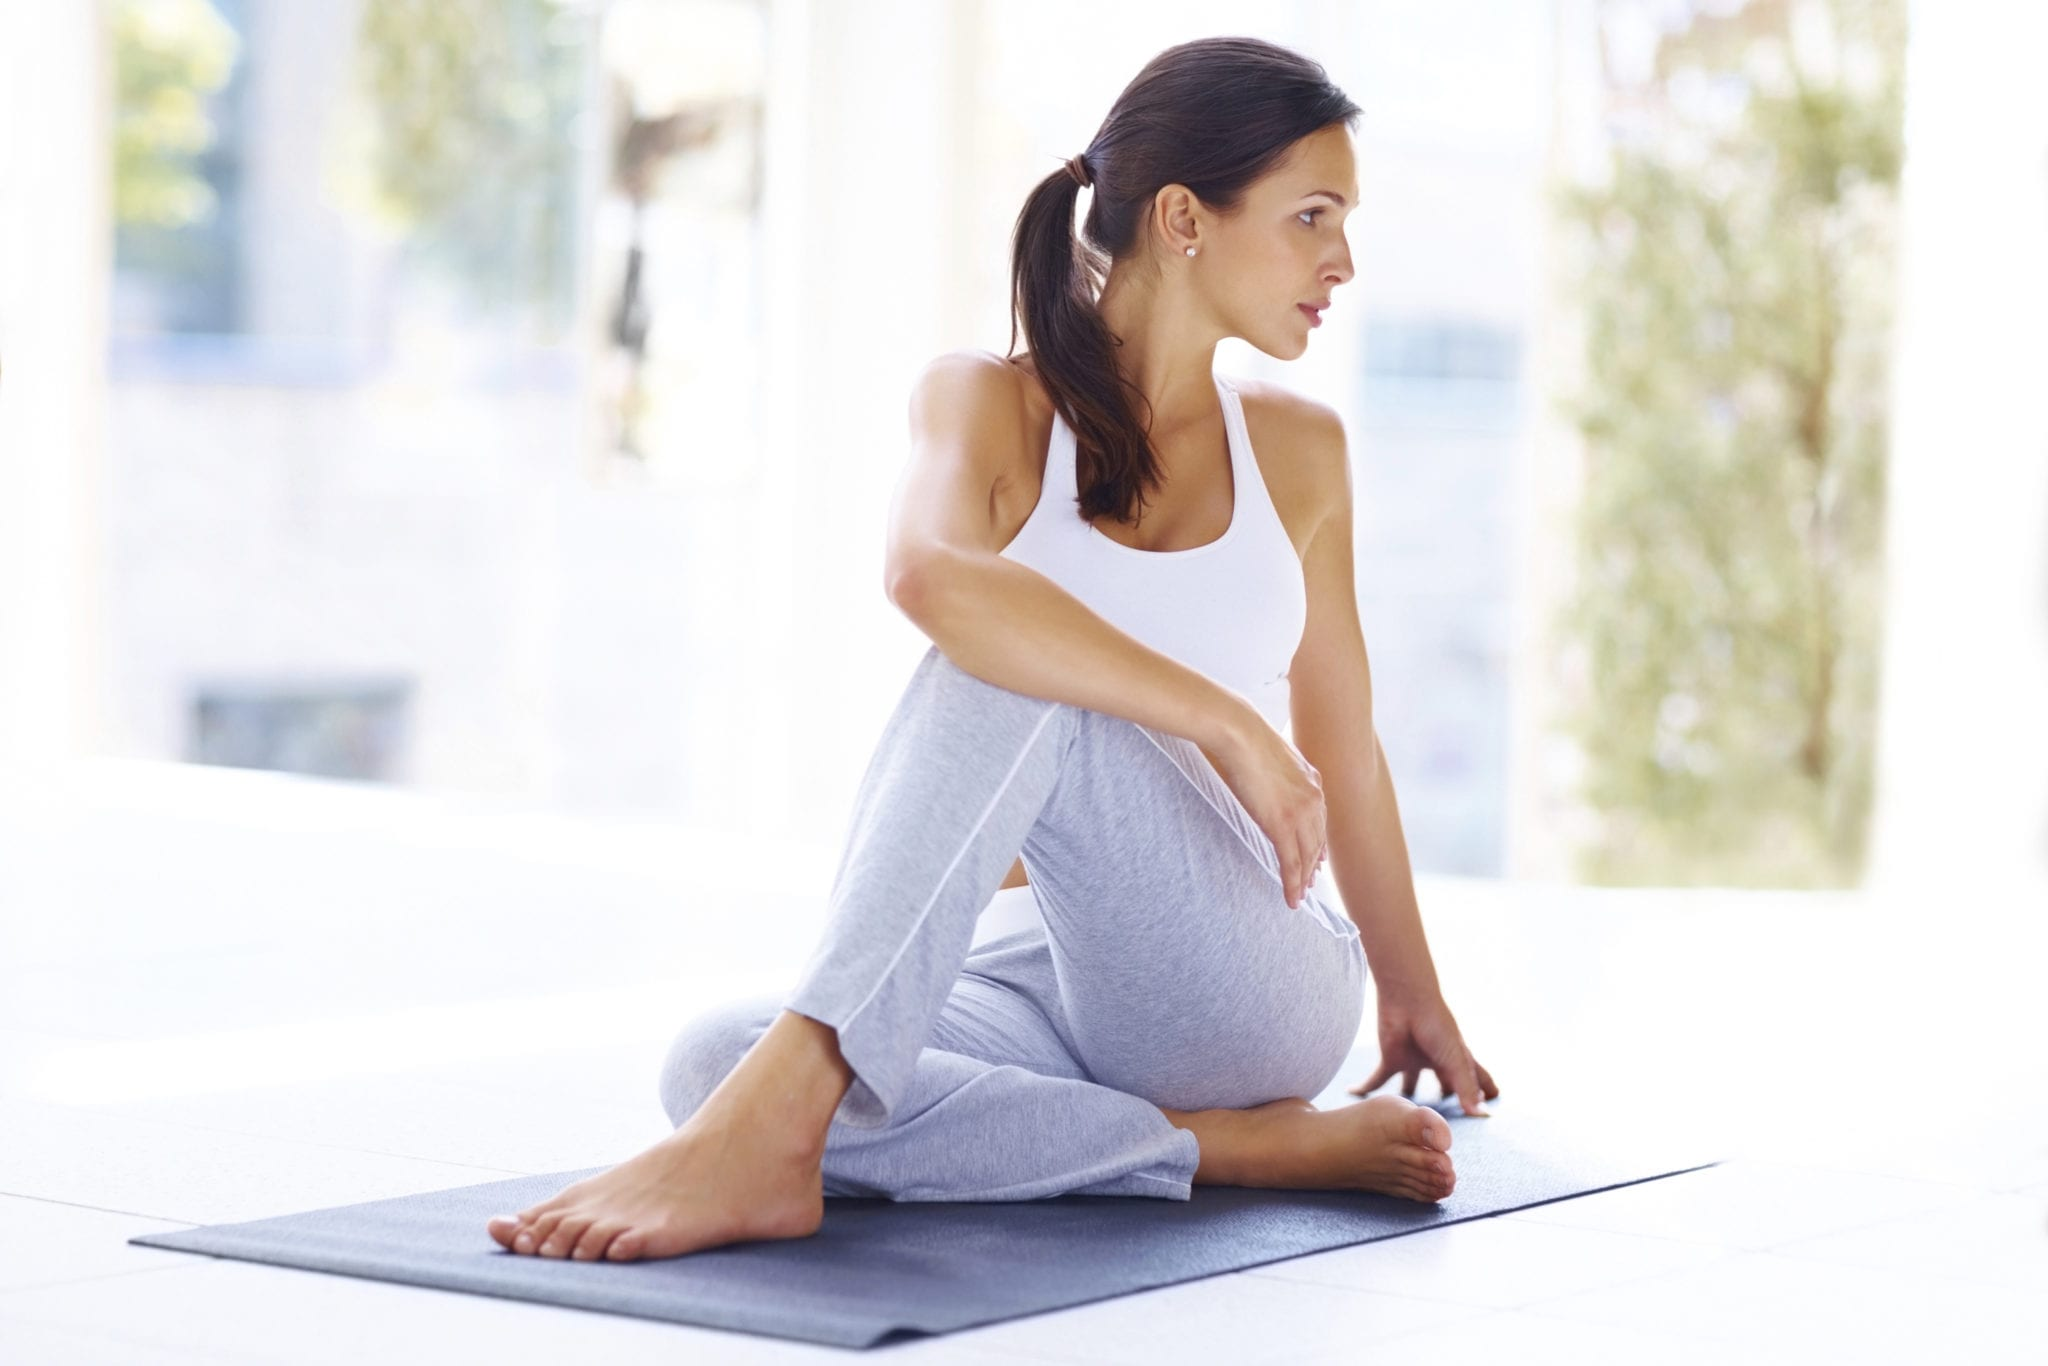 Yoga poses to ease menopause symptoms